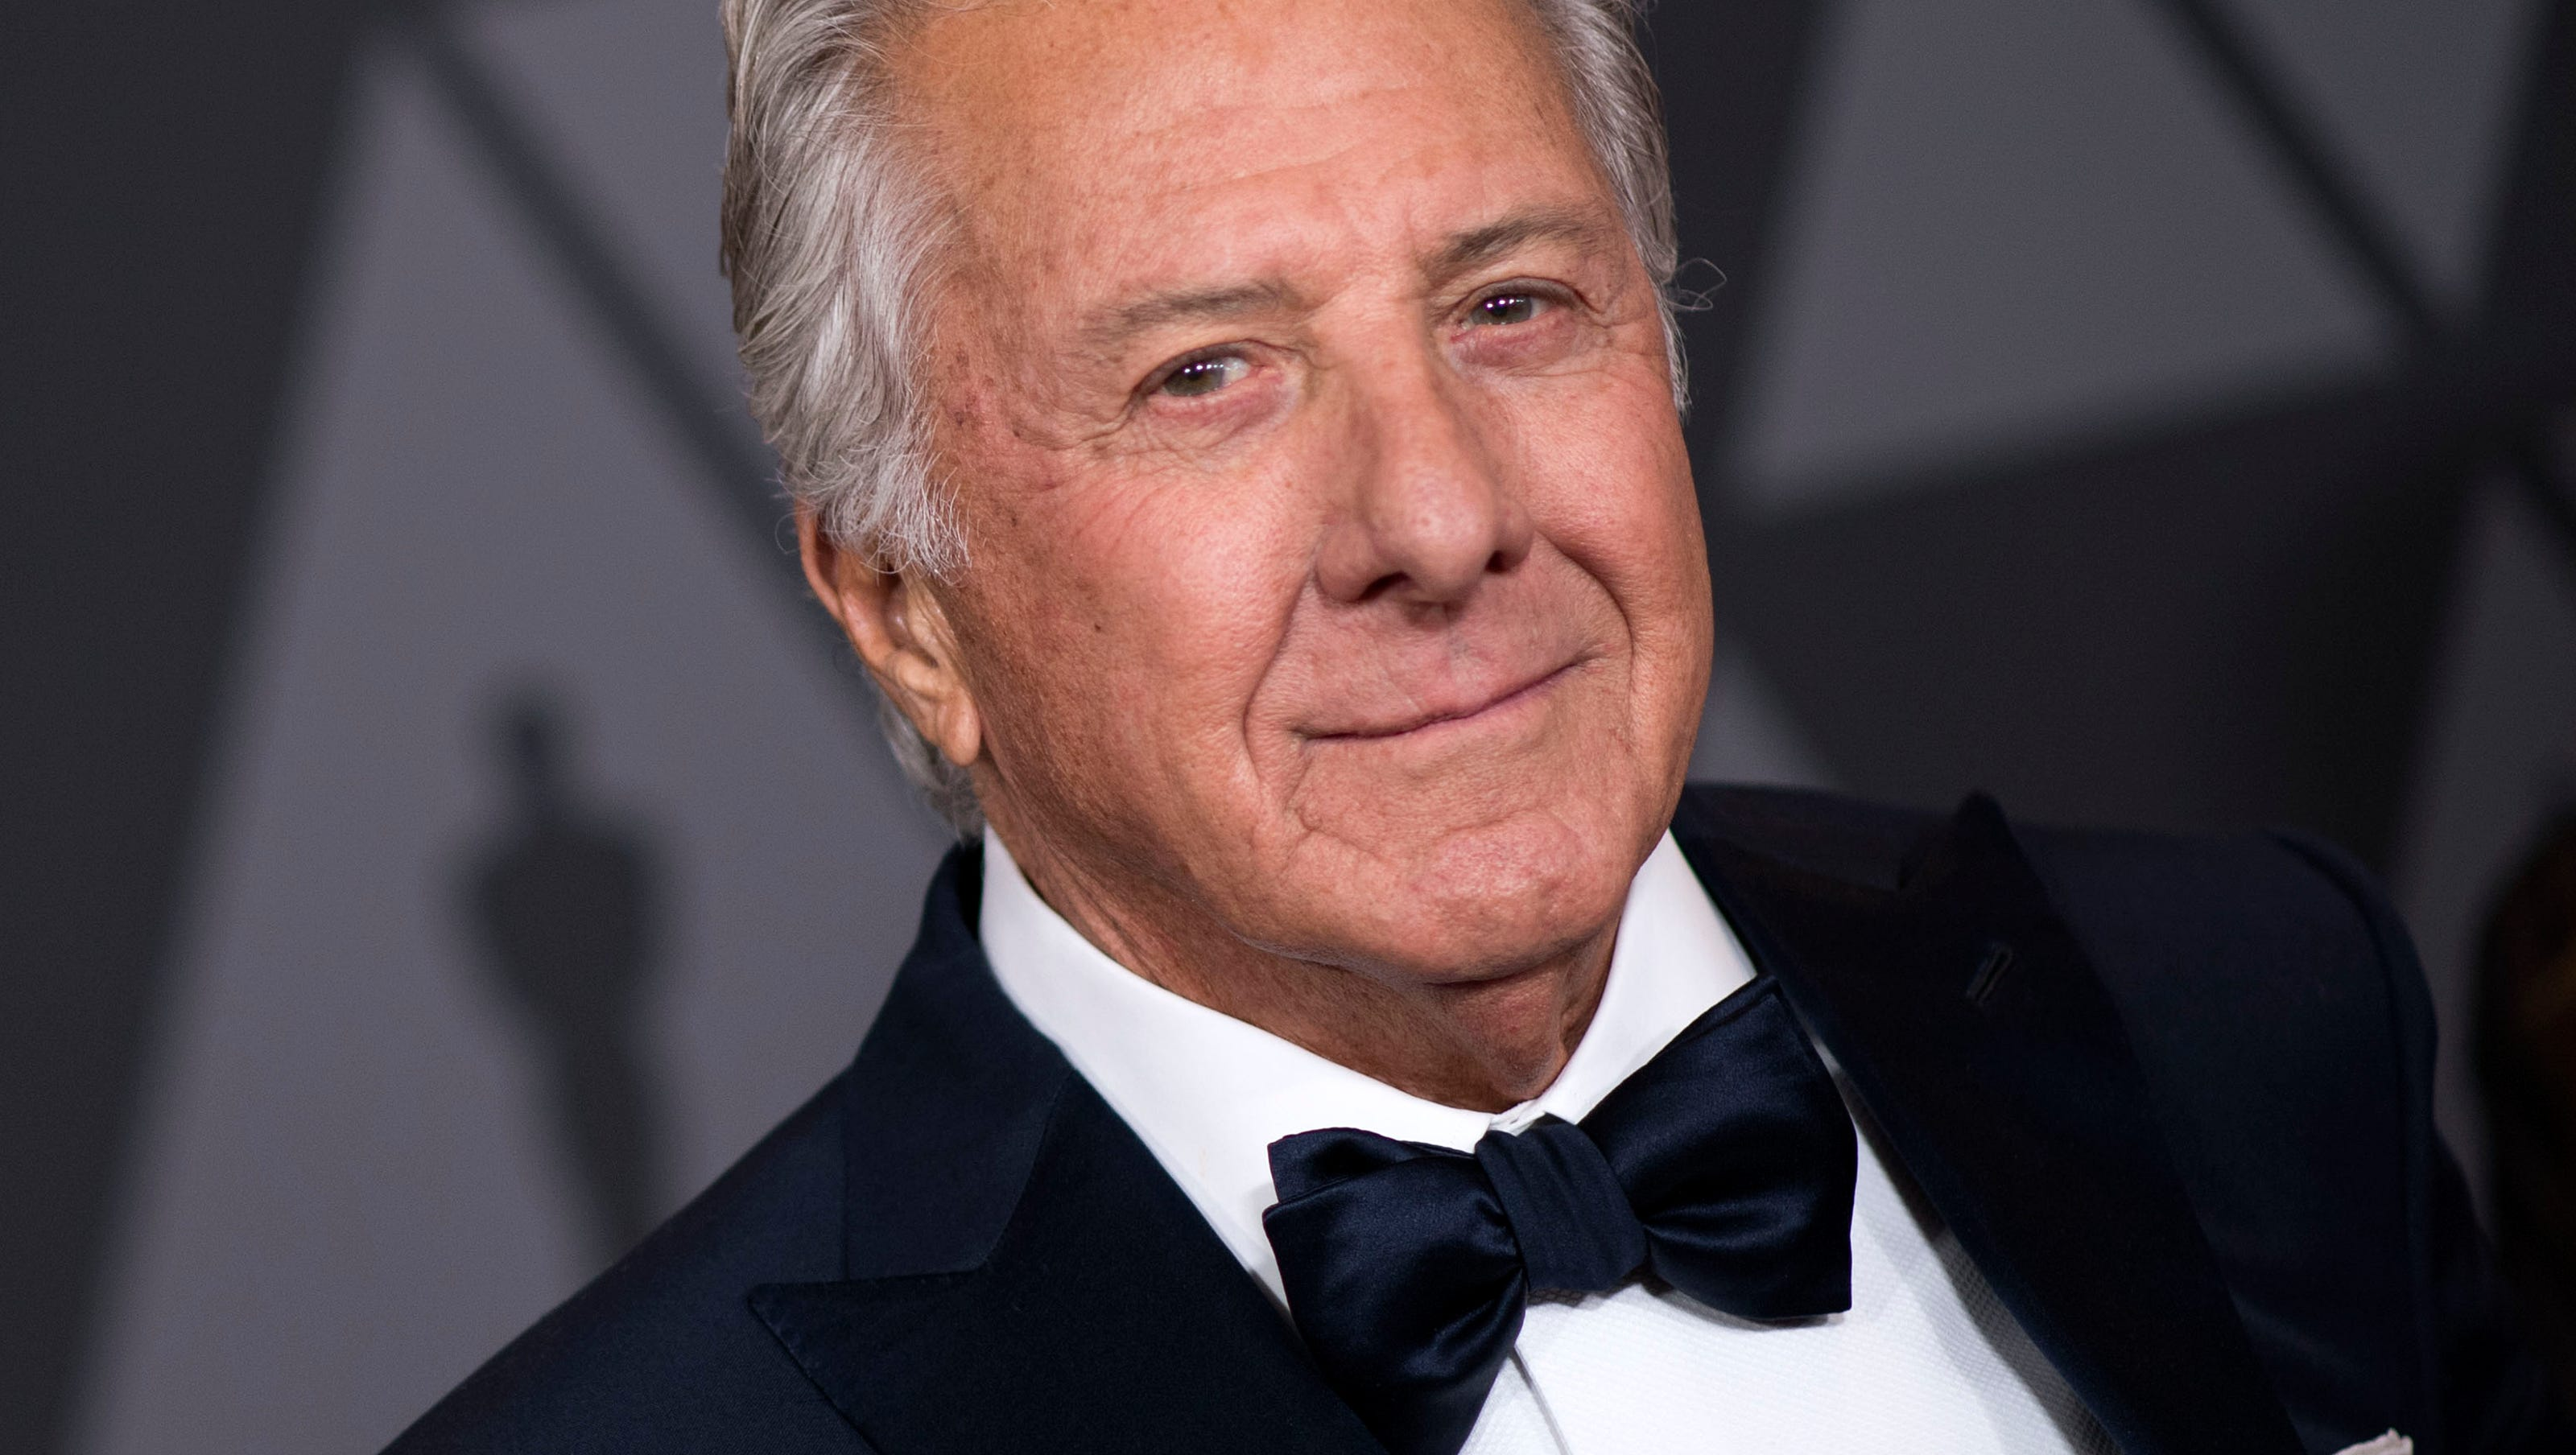 Kathryn Rossetter Dustin Hoffman >> Dustin Hoffman accused of sexually groping actress 'night after night'